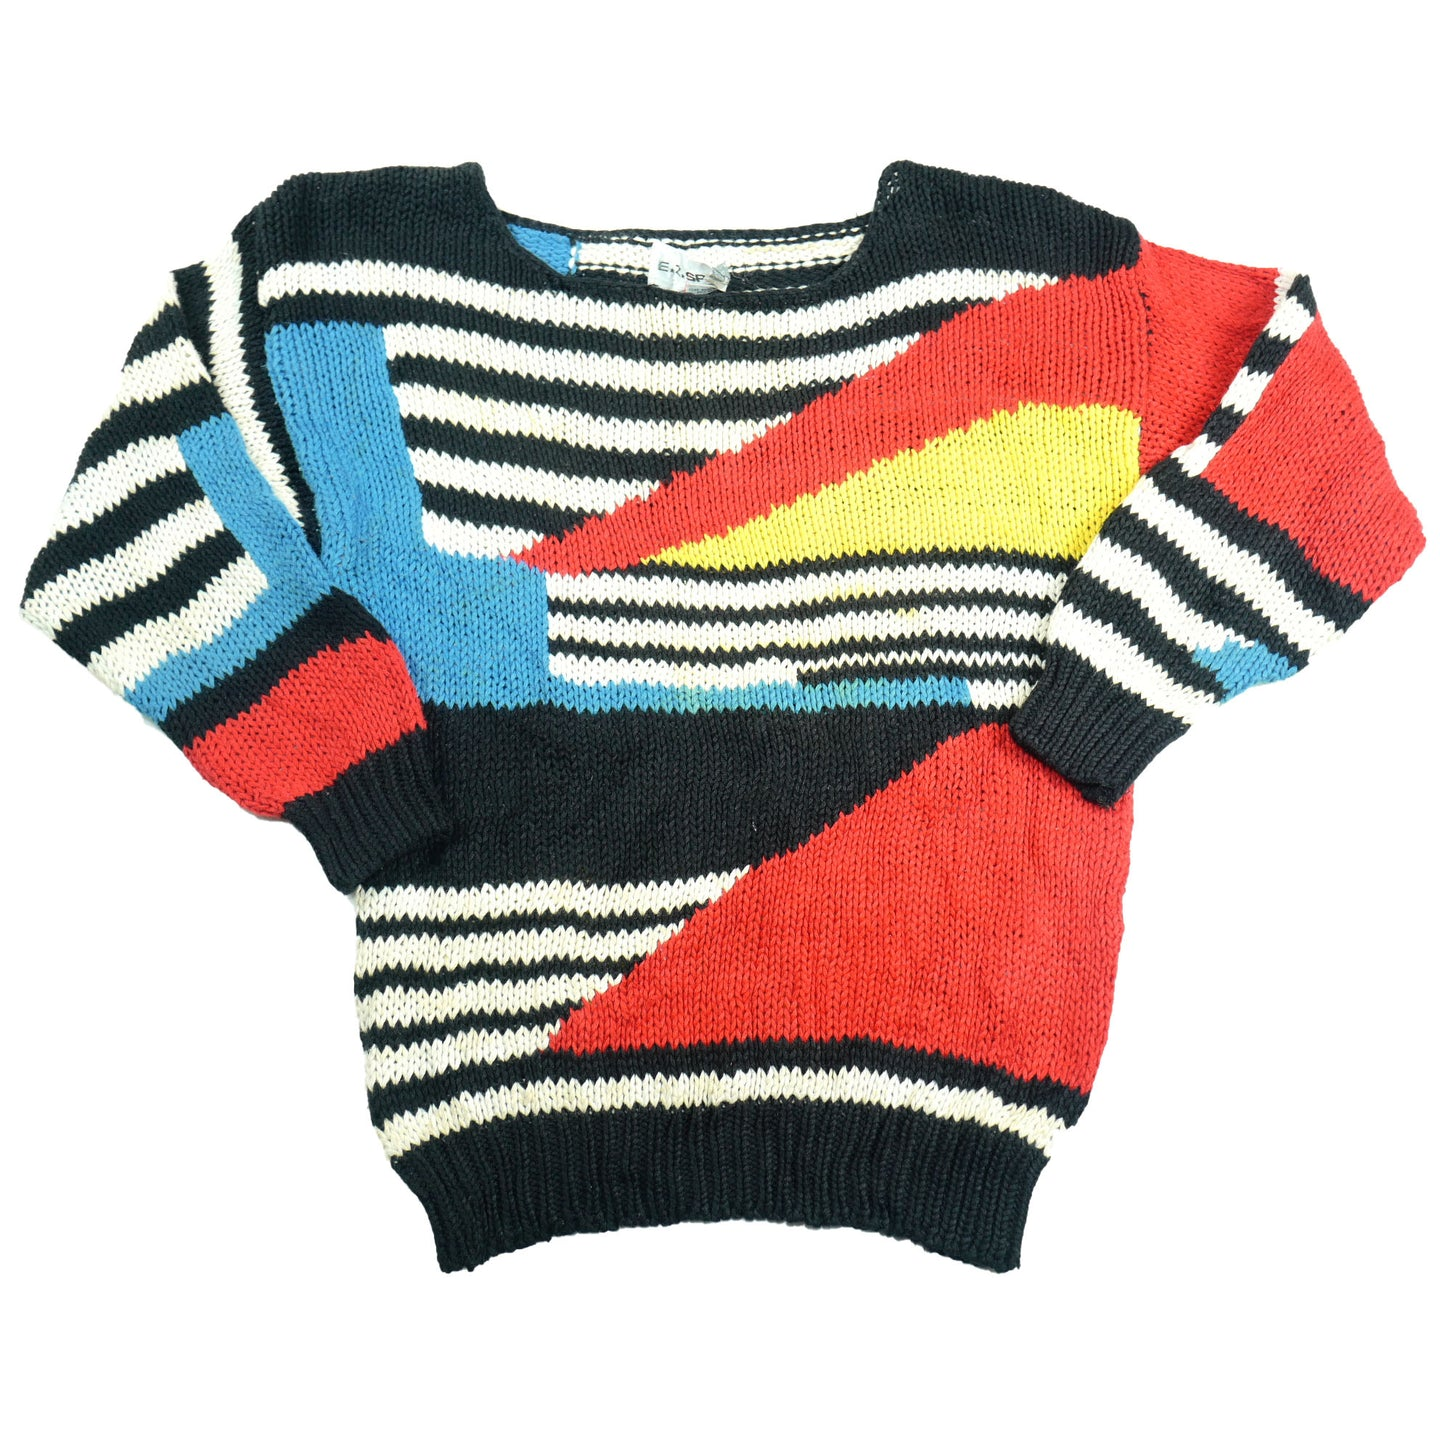 Vintage Abstract Petite Women's Sweater